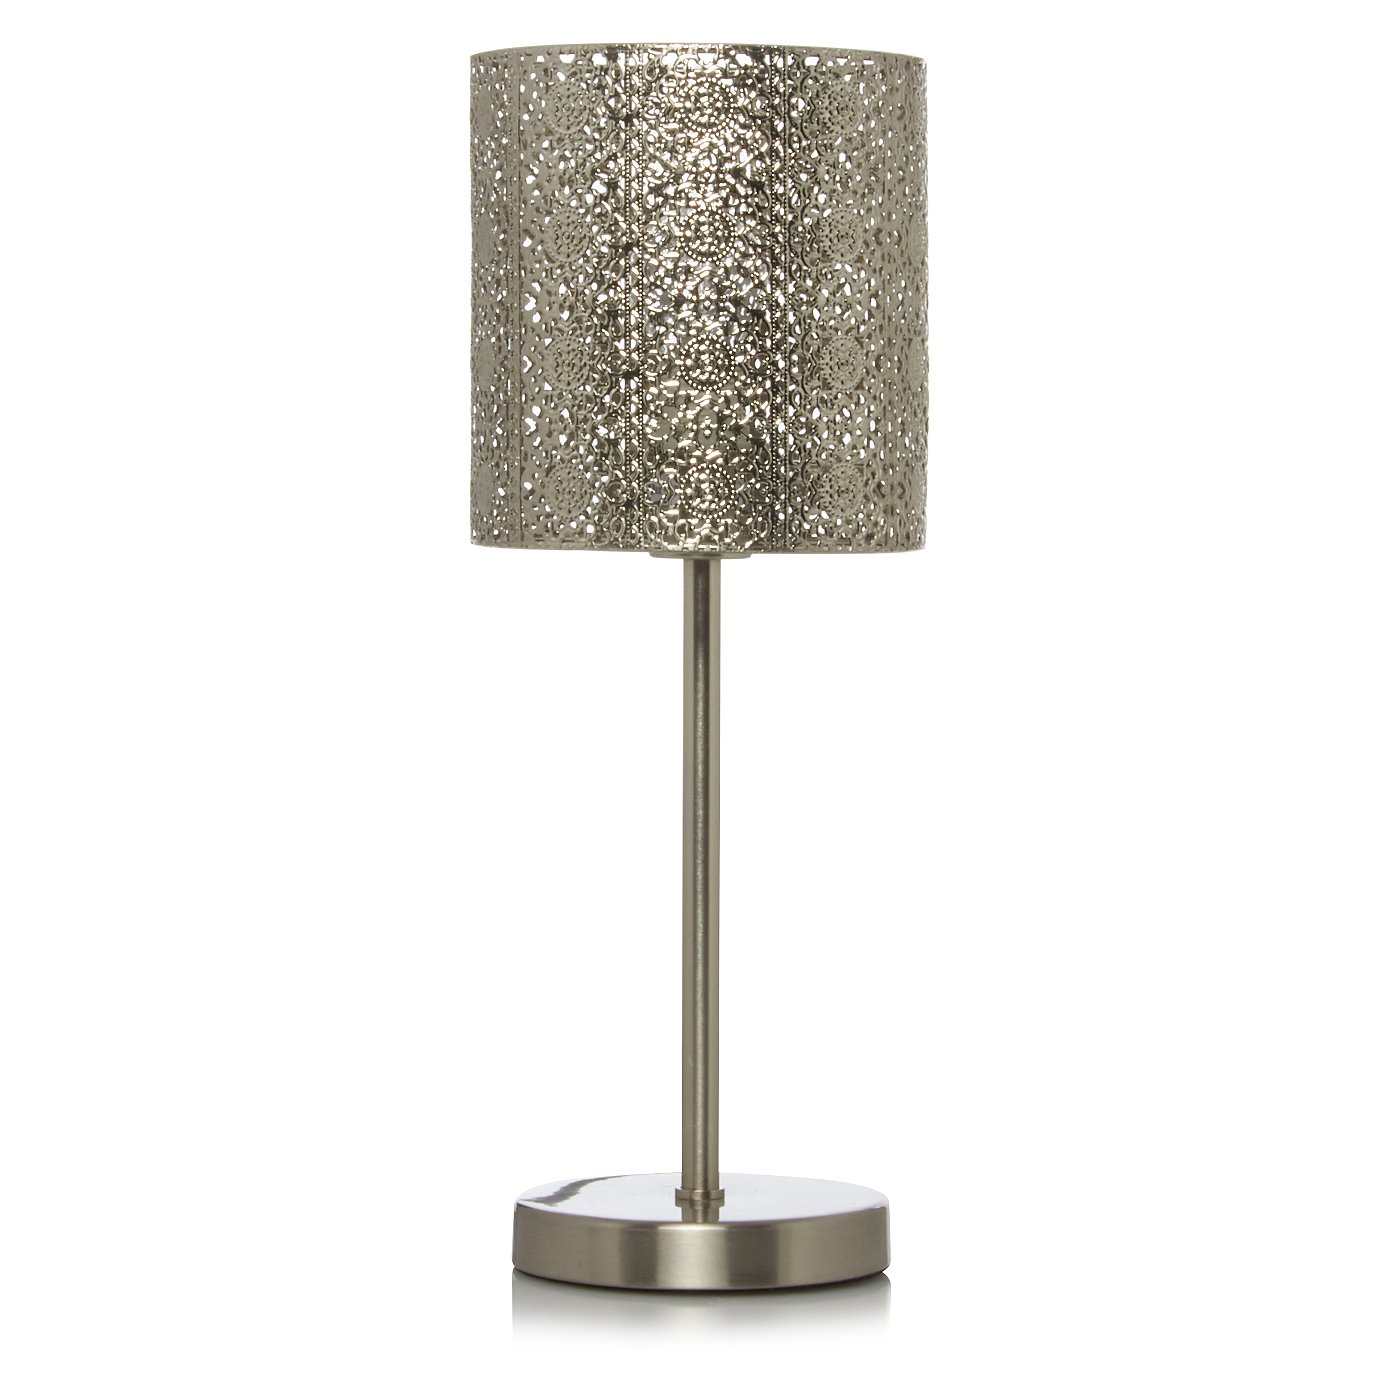 Moroccan silver lamp range table floor lamps george at asda moroccan silver lamp range loading zoom mozeypictures Gallery